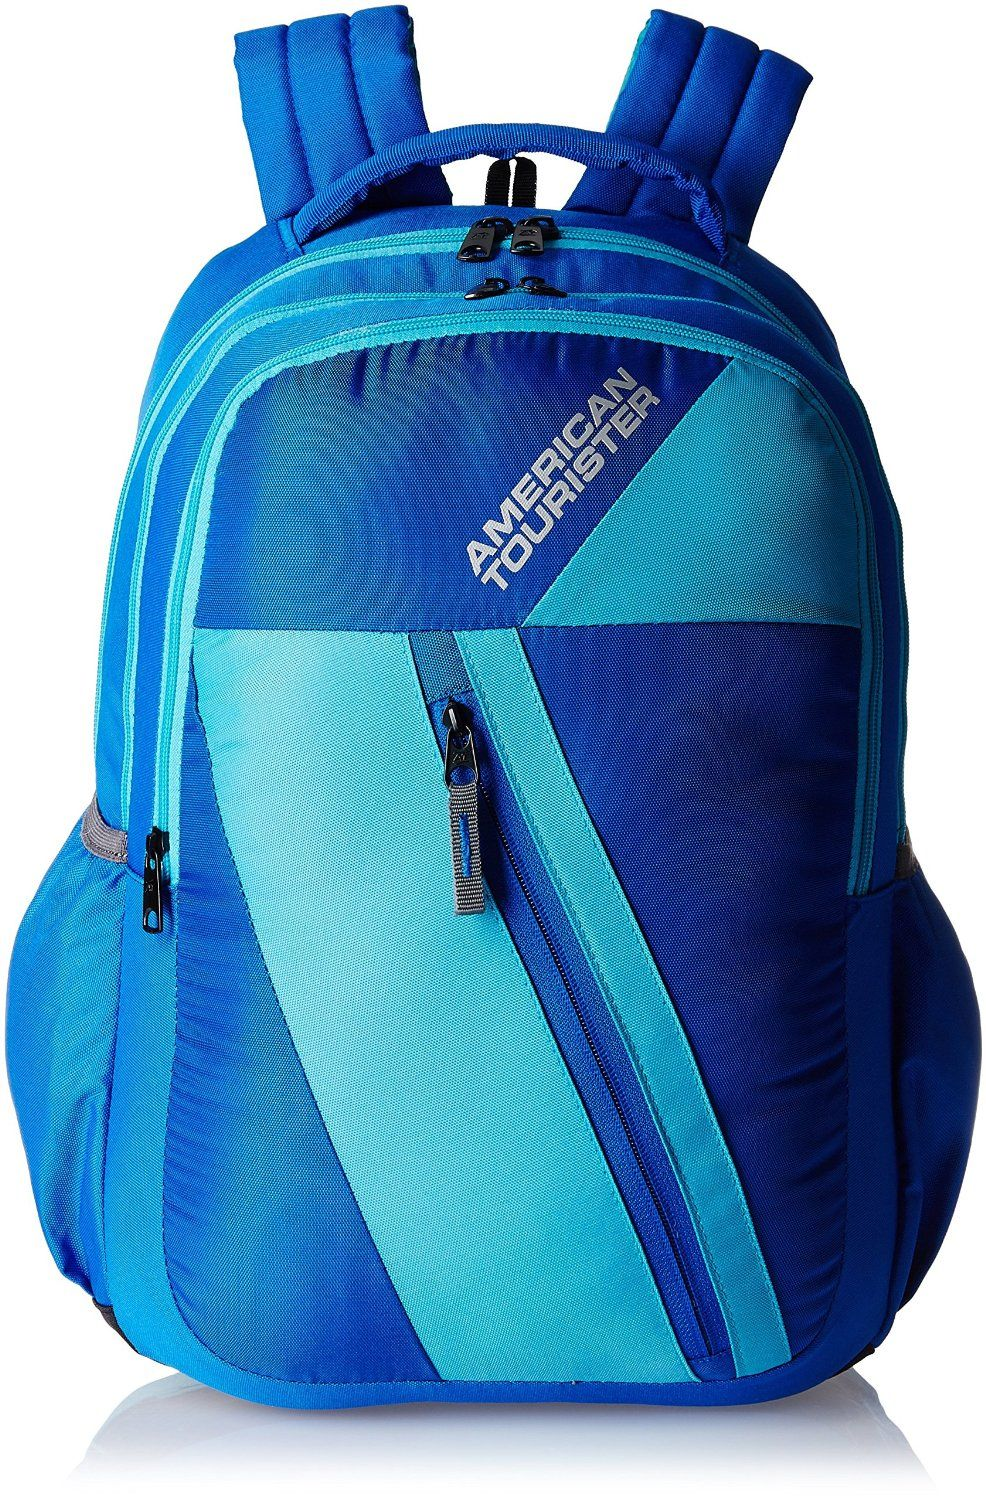 8c0ce36273ad American Tourister Ebony Blue Casual Backpack (Ebony Backpack  07 8901836132830) College Bags